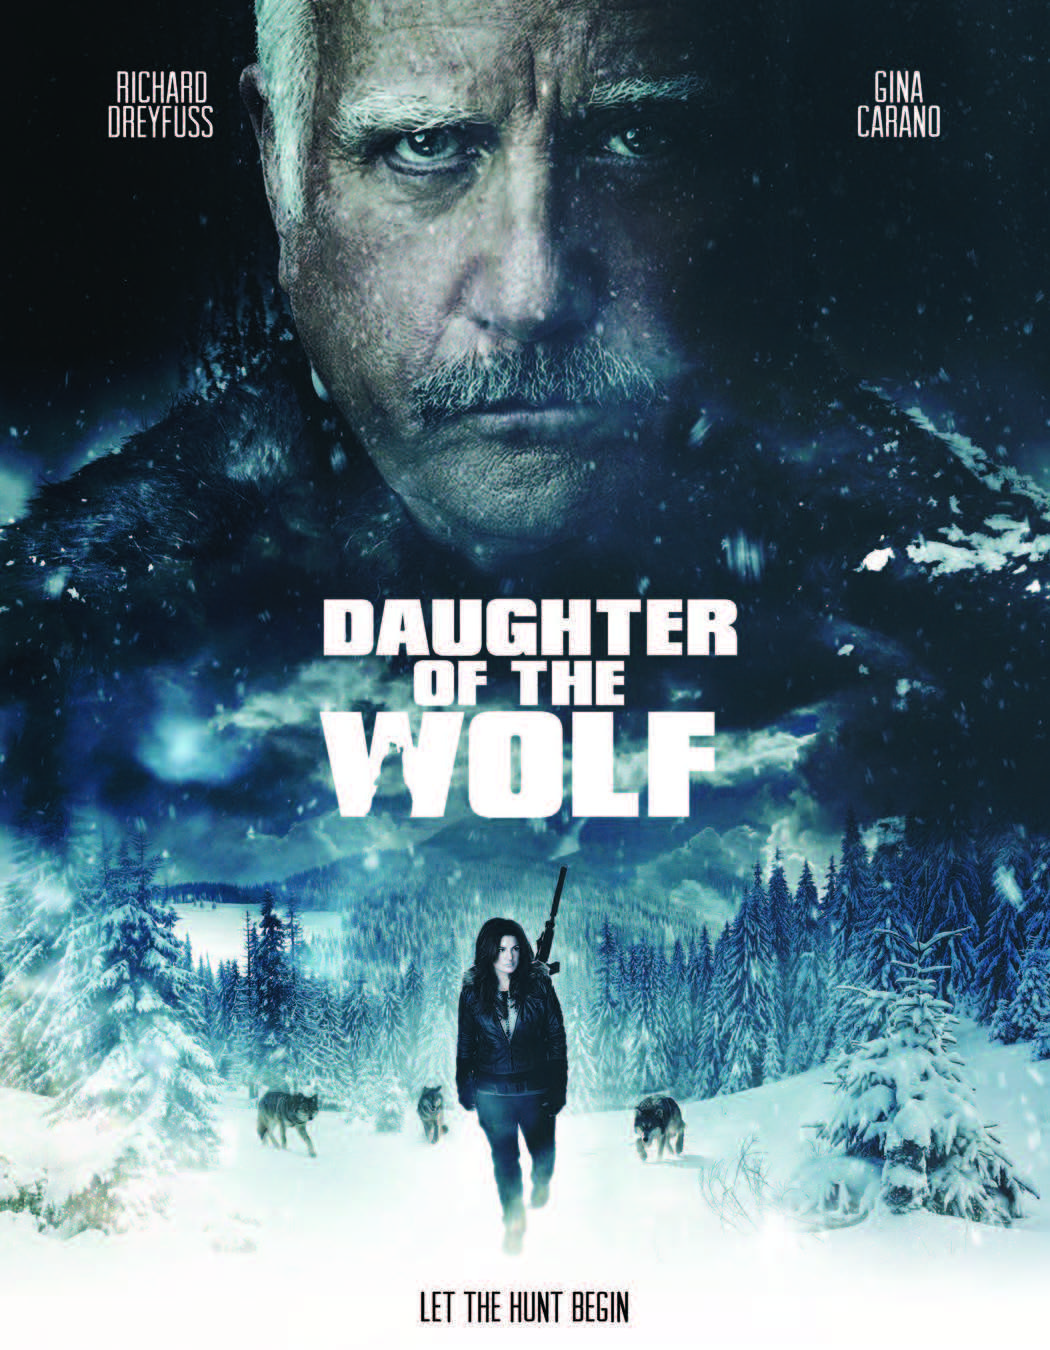 Daughter Of The Wolf Teaser Poster Https Teaser Trailer Com Movie Daughter Of The Wolf Daughterofthewolf Daughter Wolf Movie Full Movies Movies Online